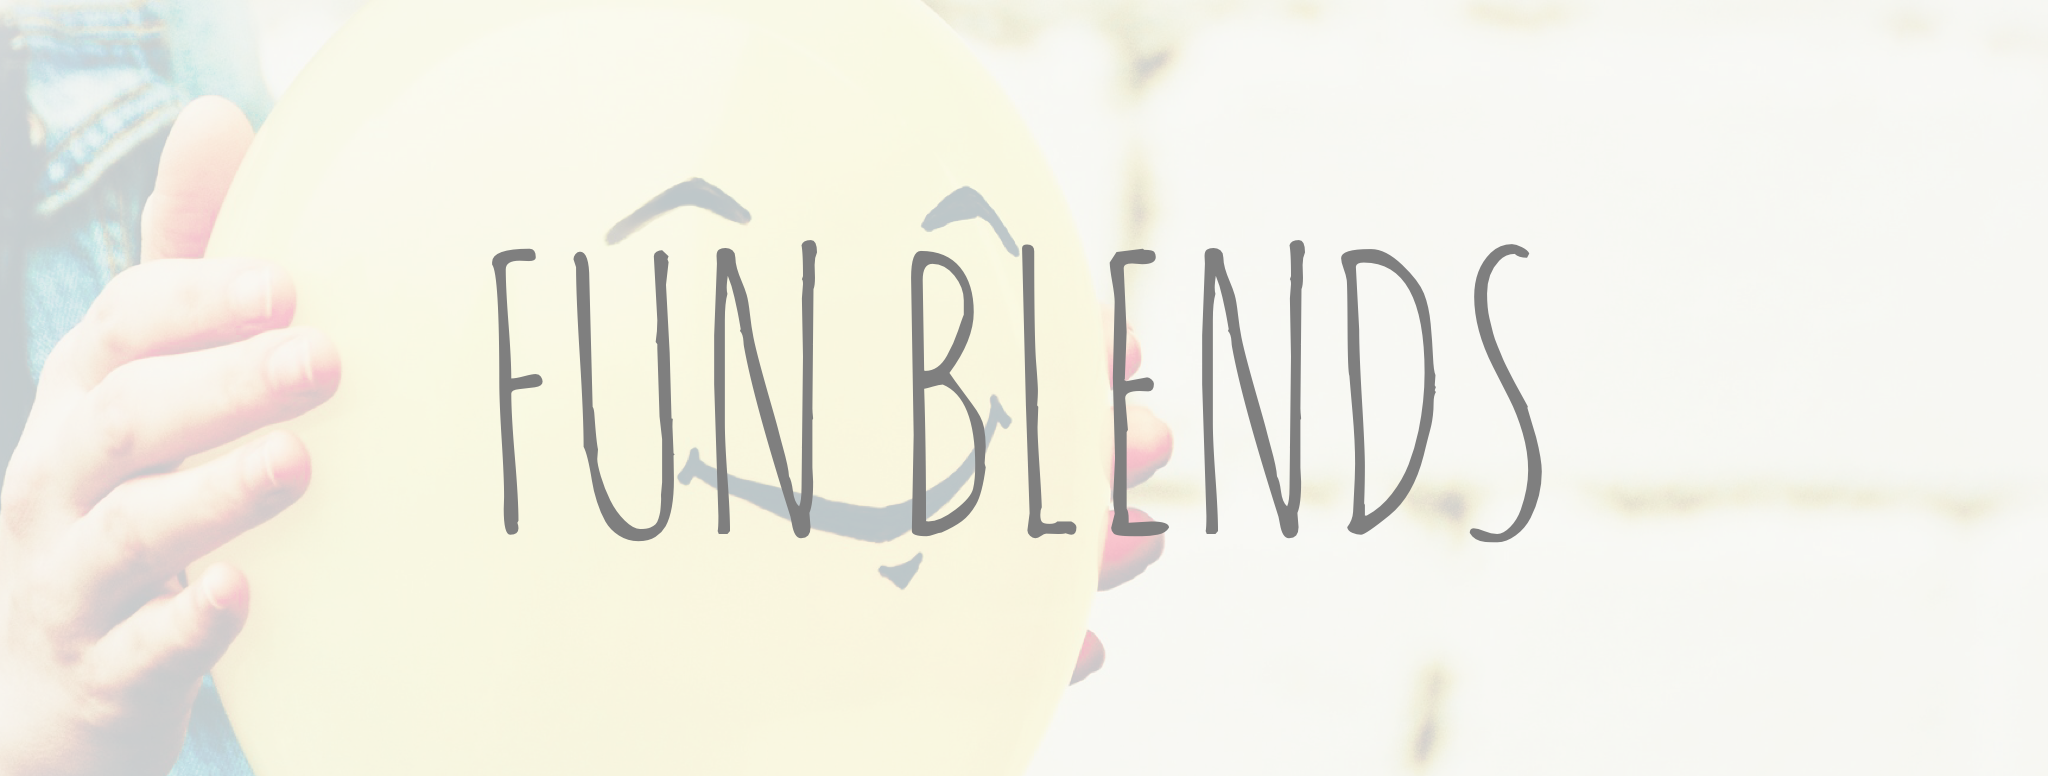 fun blends banner.png